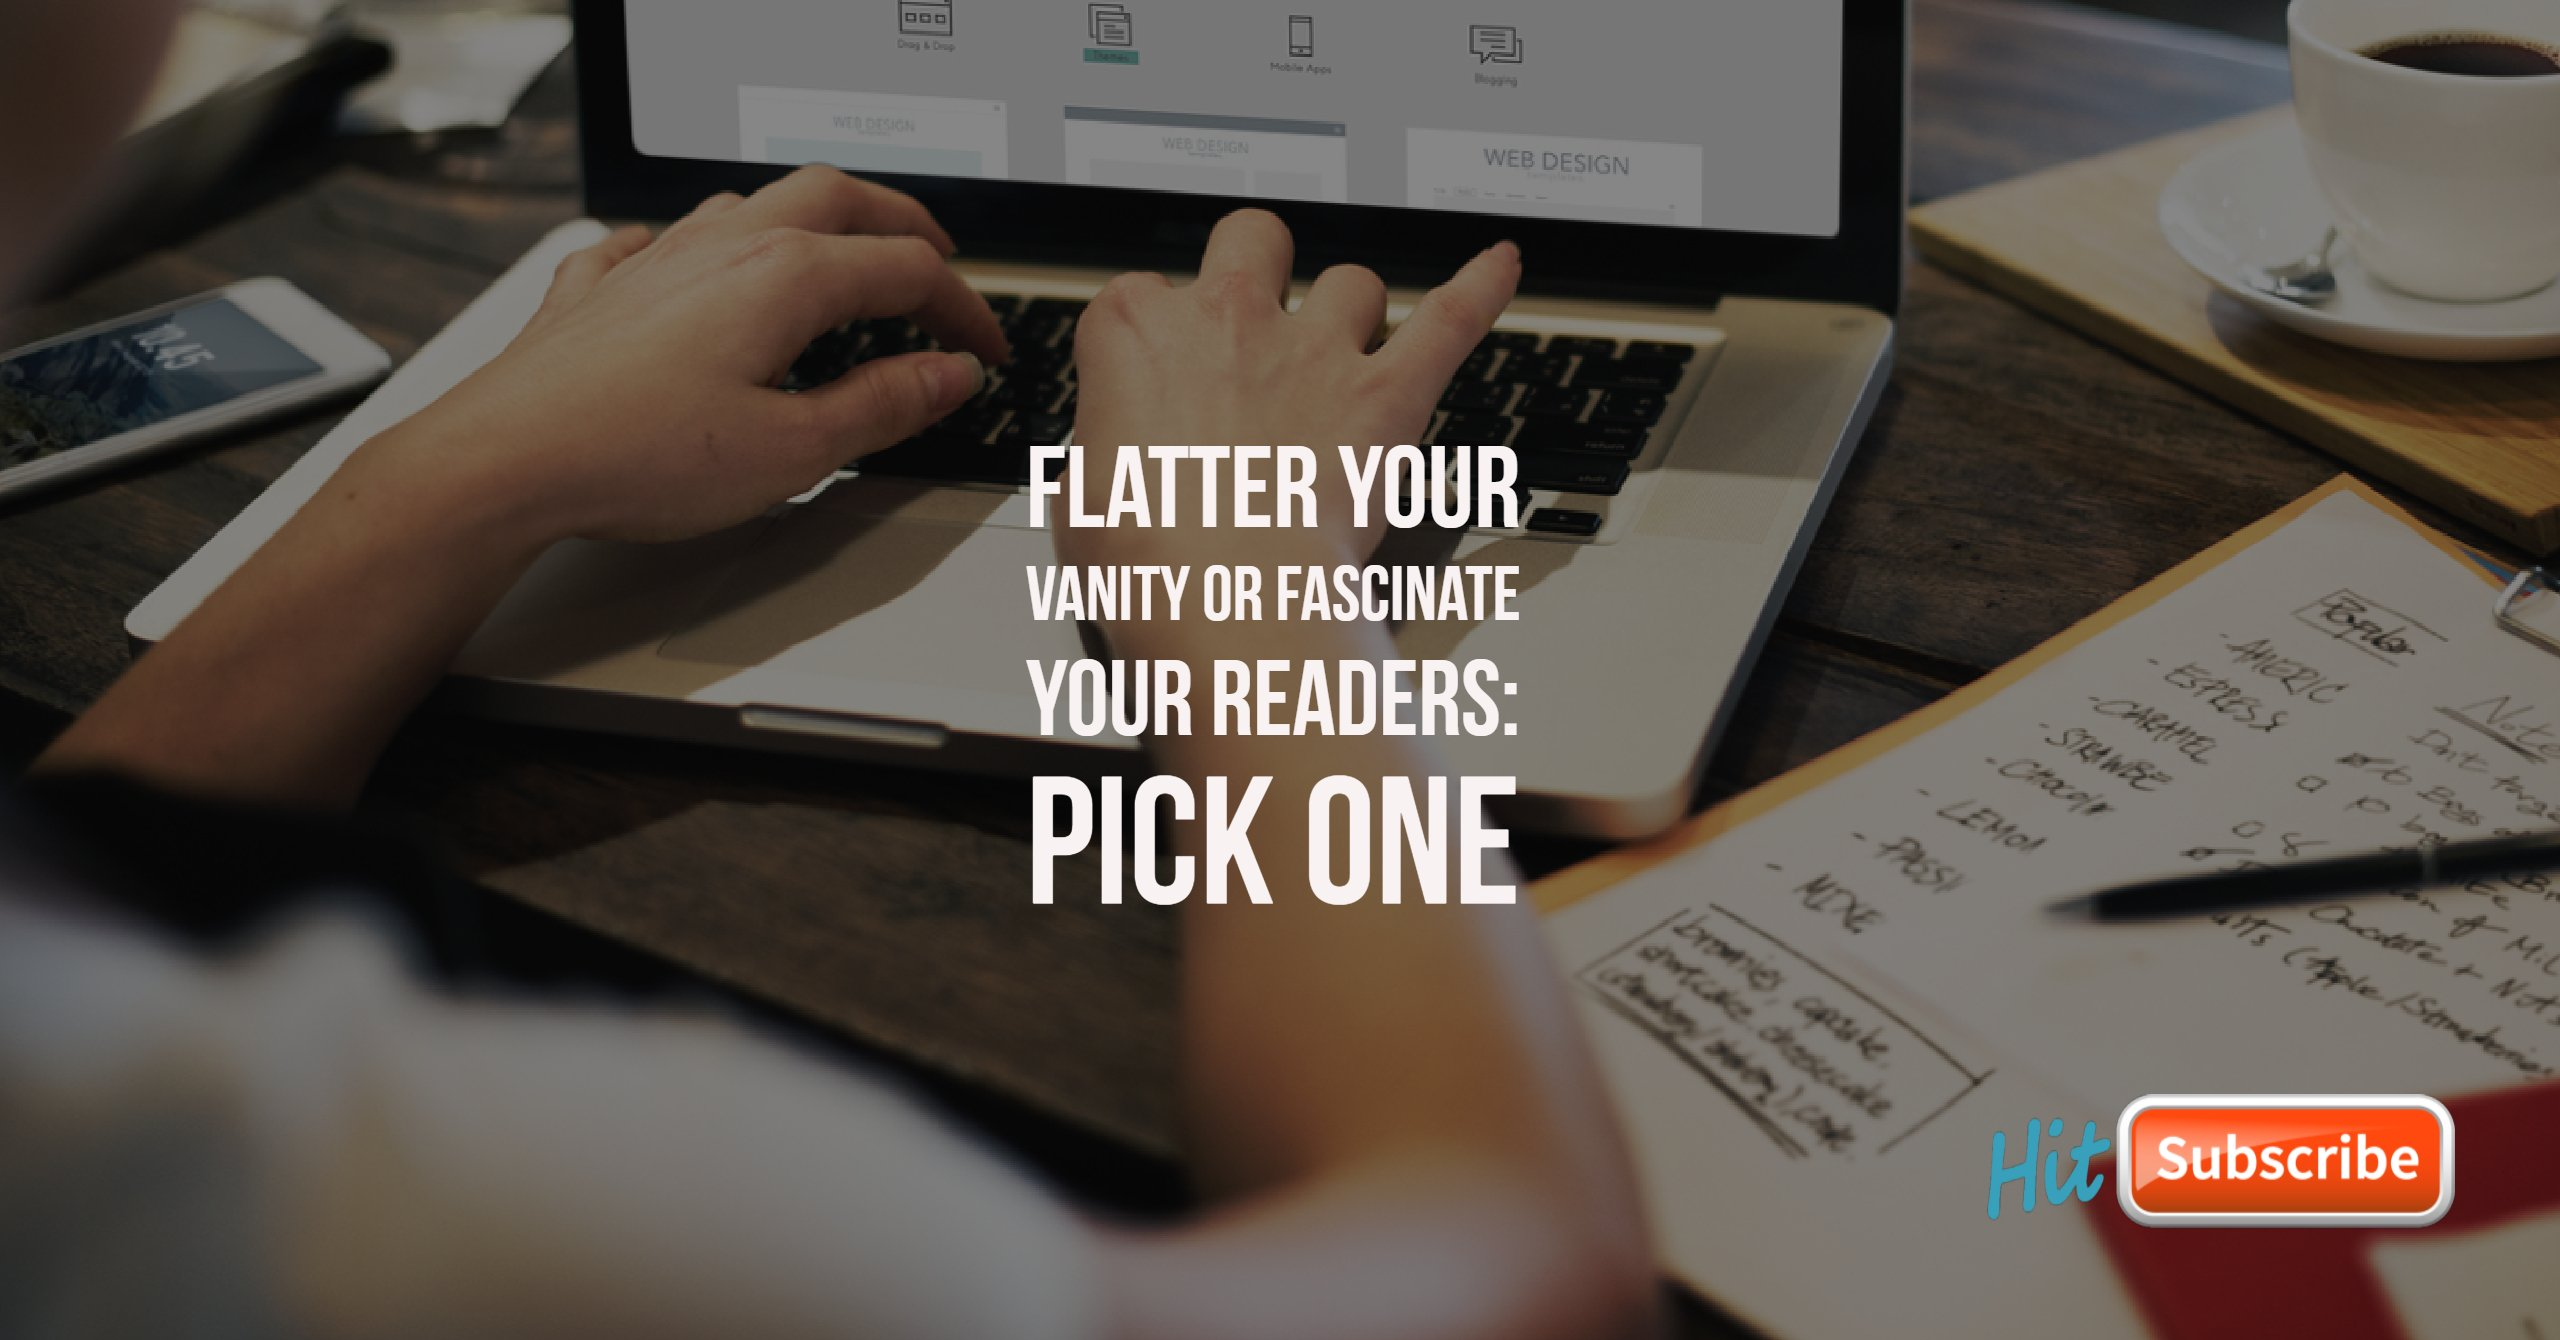 Flatter Your Vanity or Fascinate Your Readers: Pick One